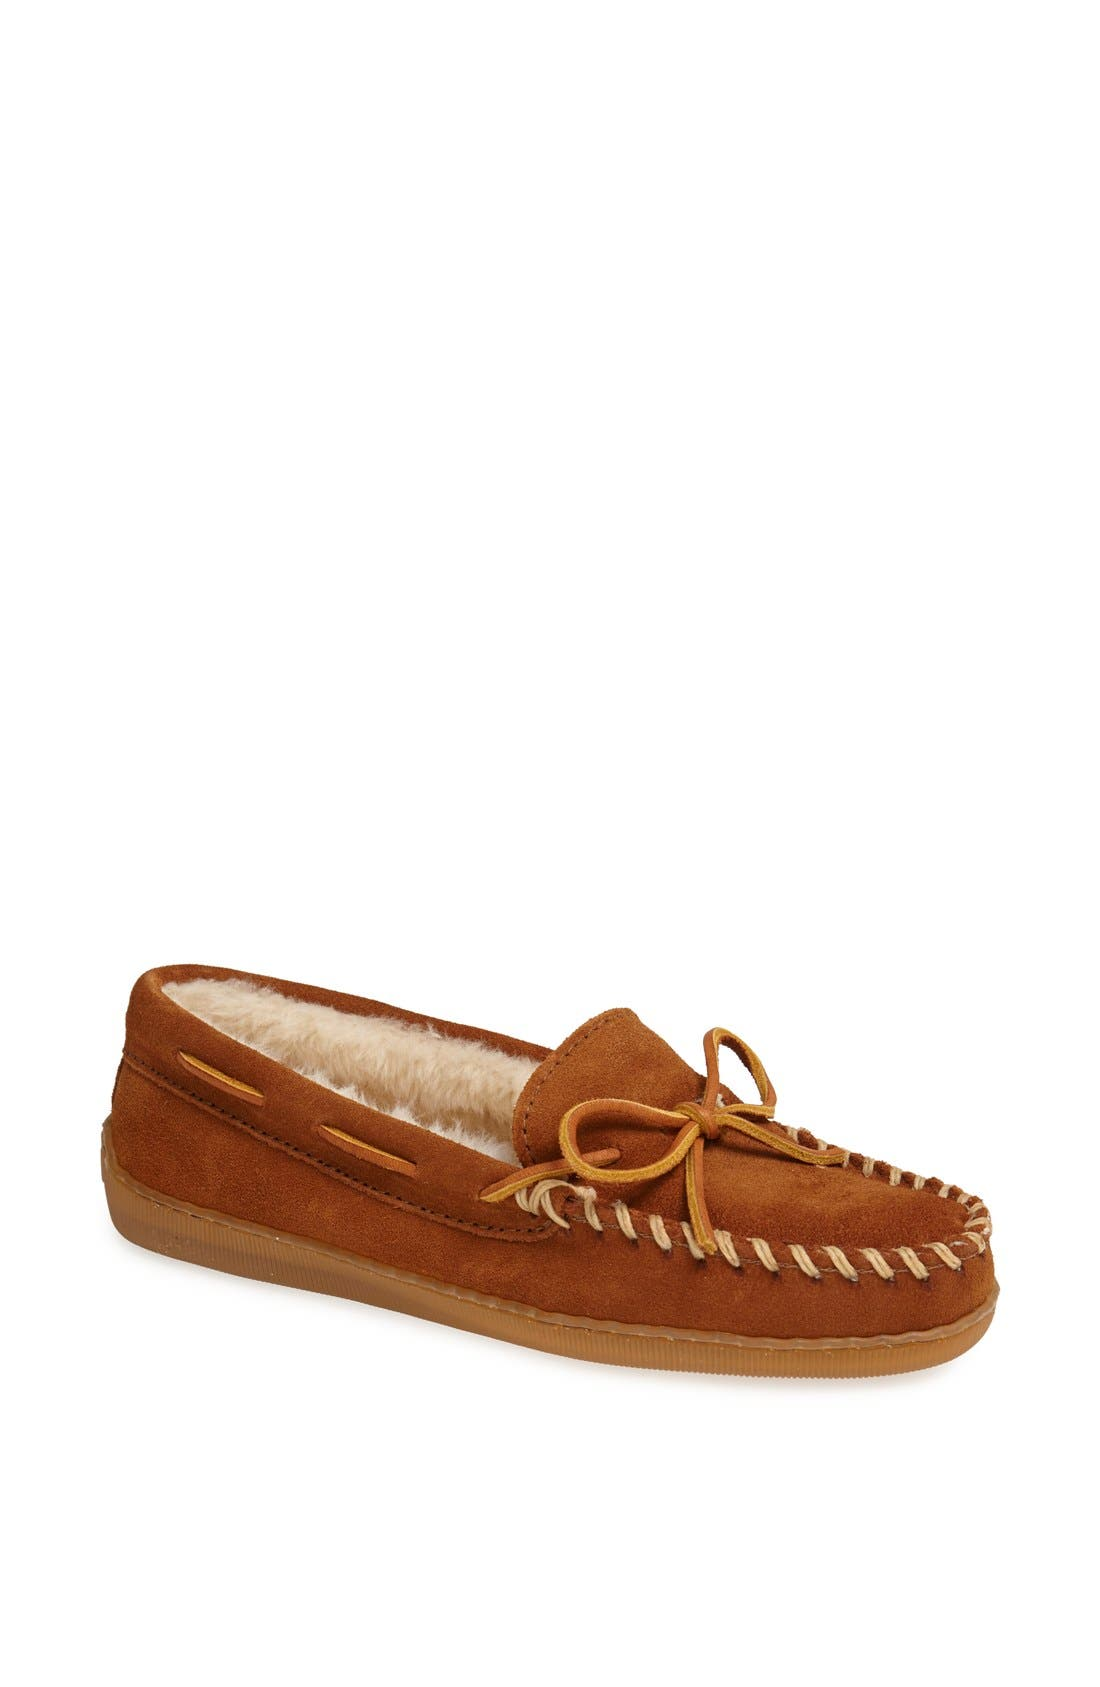 Moccasin Slipper,                         Main,                         color, BROWN